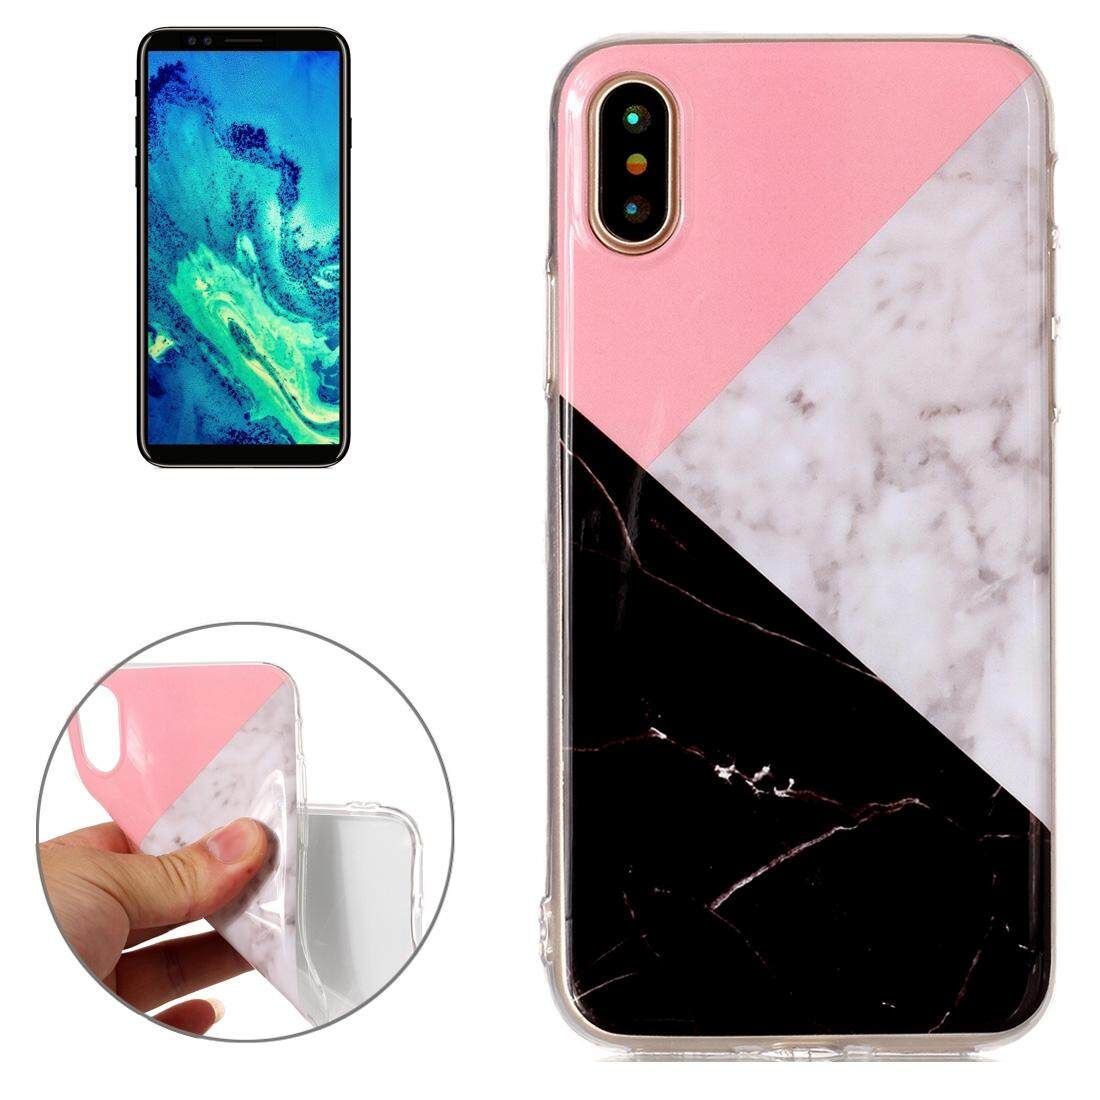 Check For Price Of Iphone 8 7 White Gold Marble Pattern Soft Goospery X Feeling Jelly Case Black Pink Color Matching Tpu Shockproof Protective Back Cover